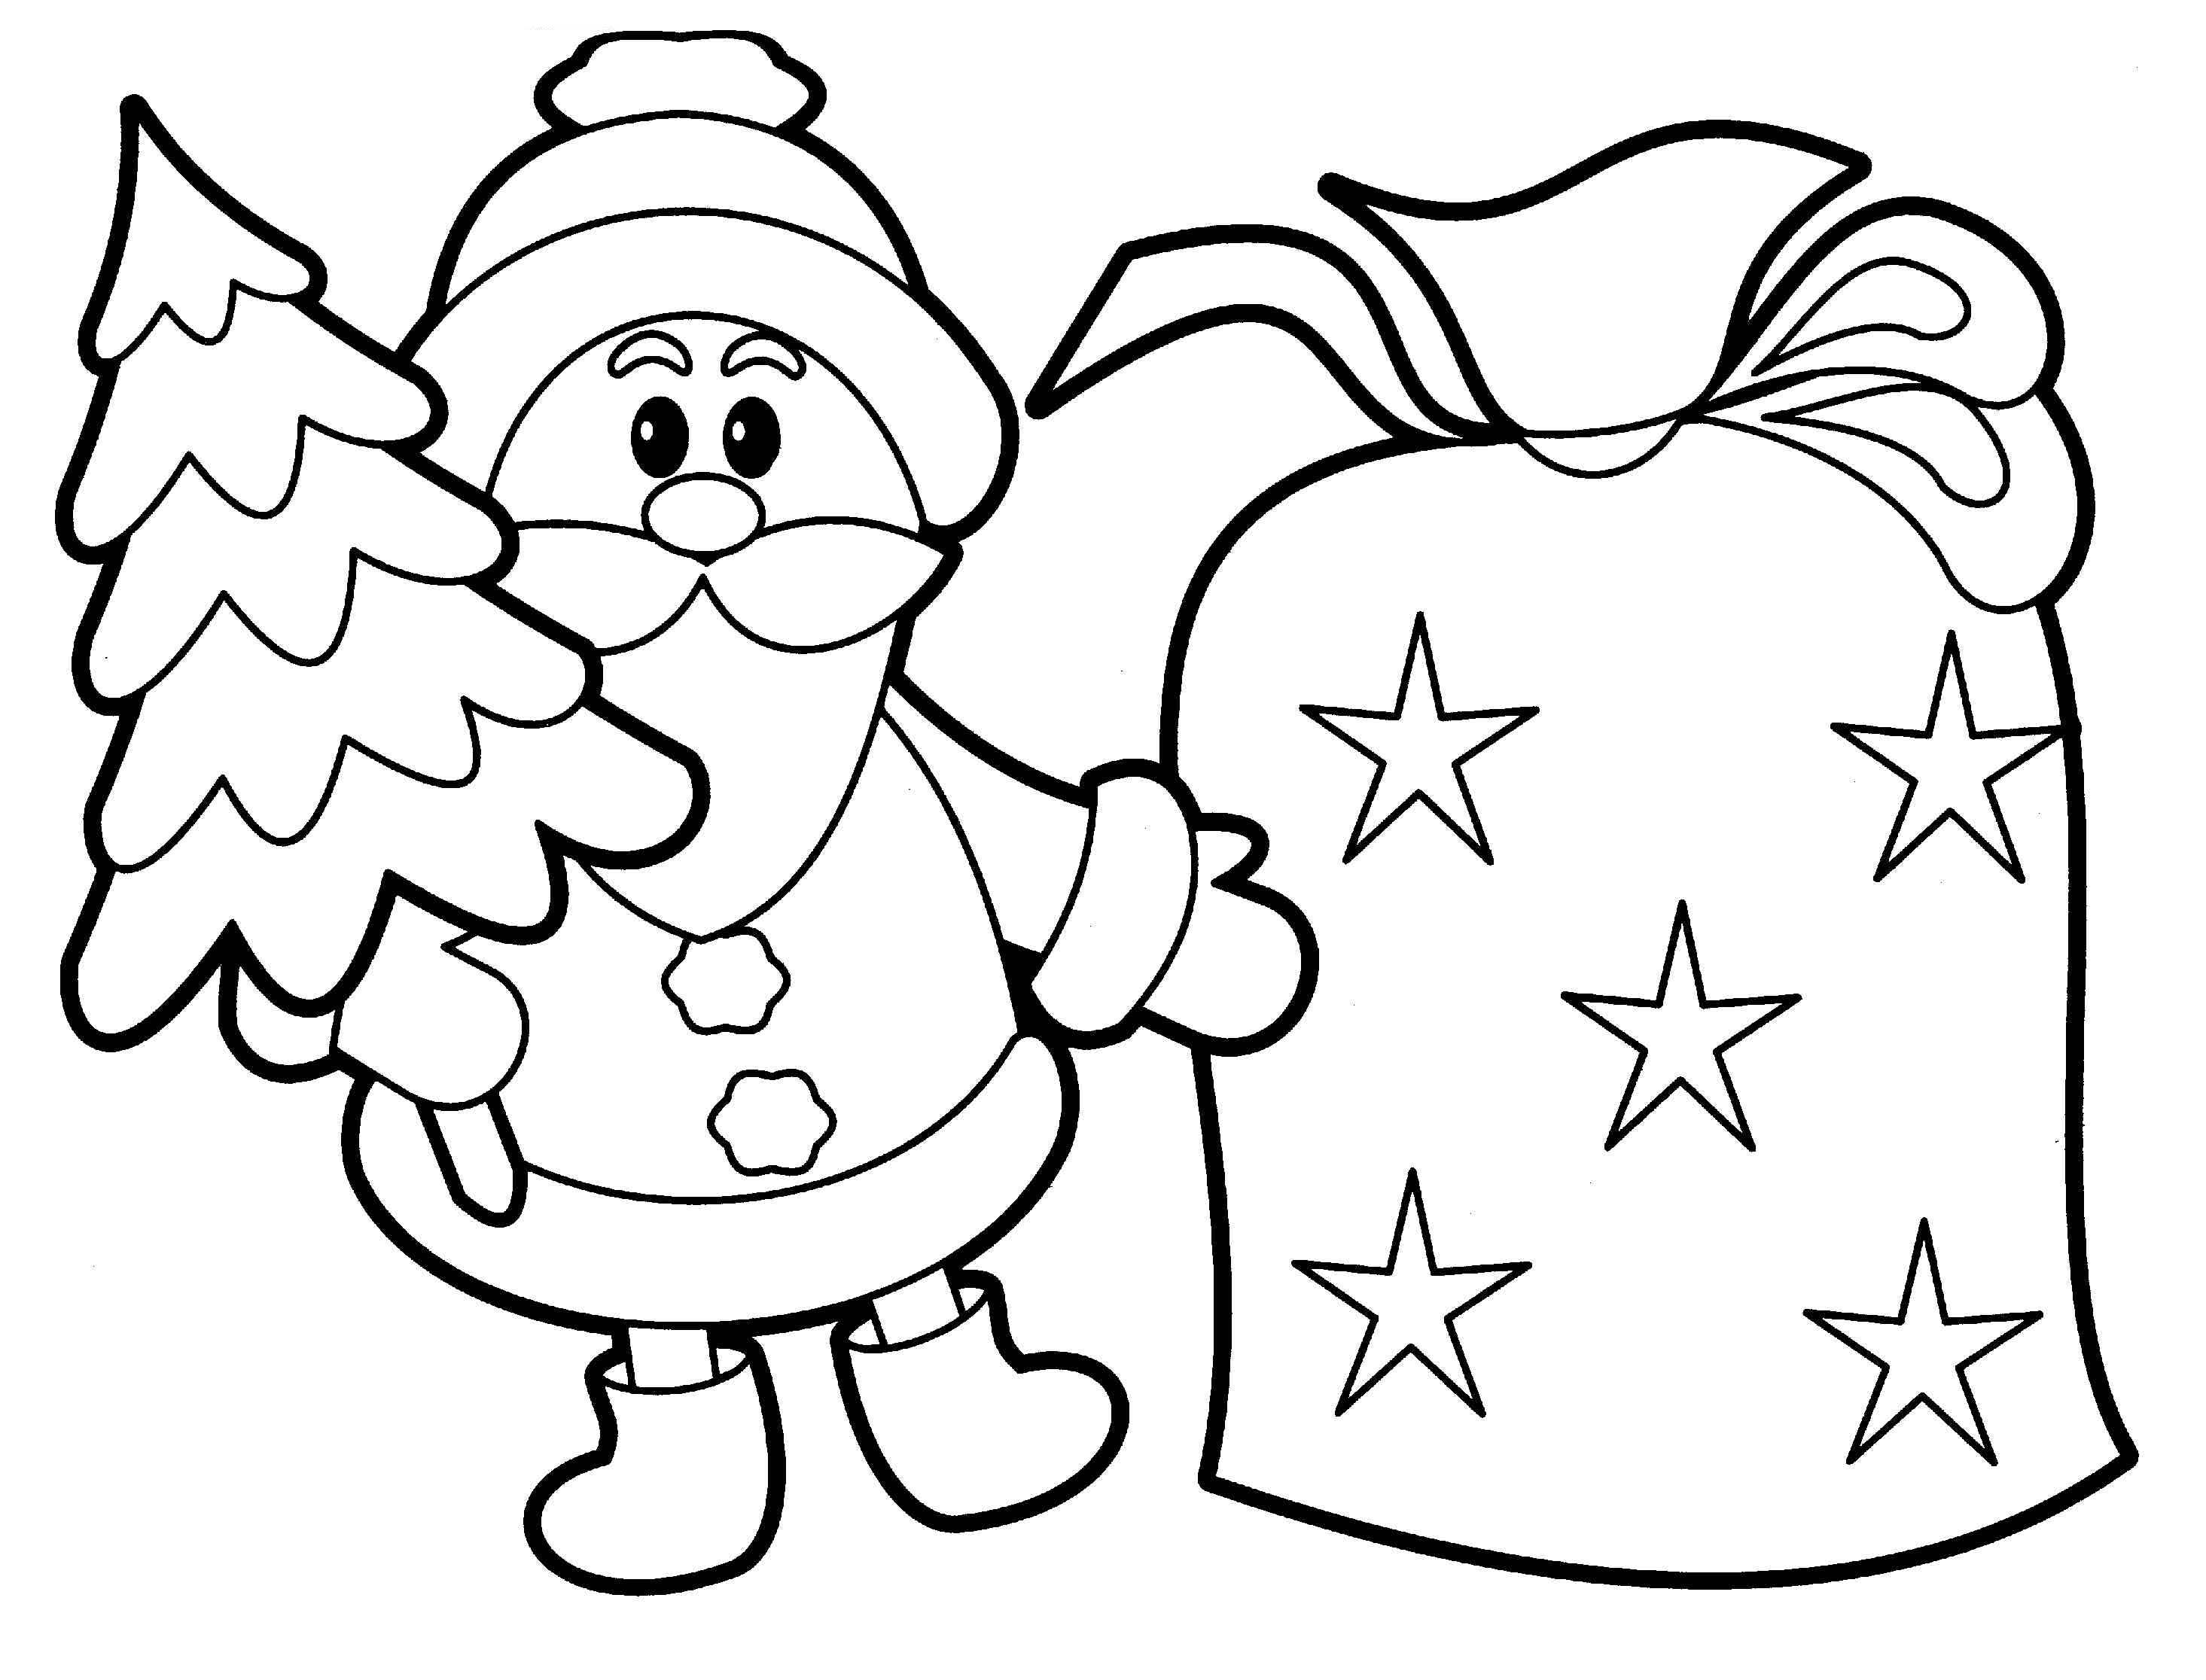 Christmas Coloring Pages Printable Free Download | Free Coloring Sheets